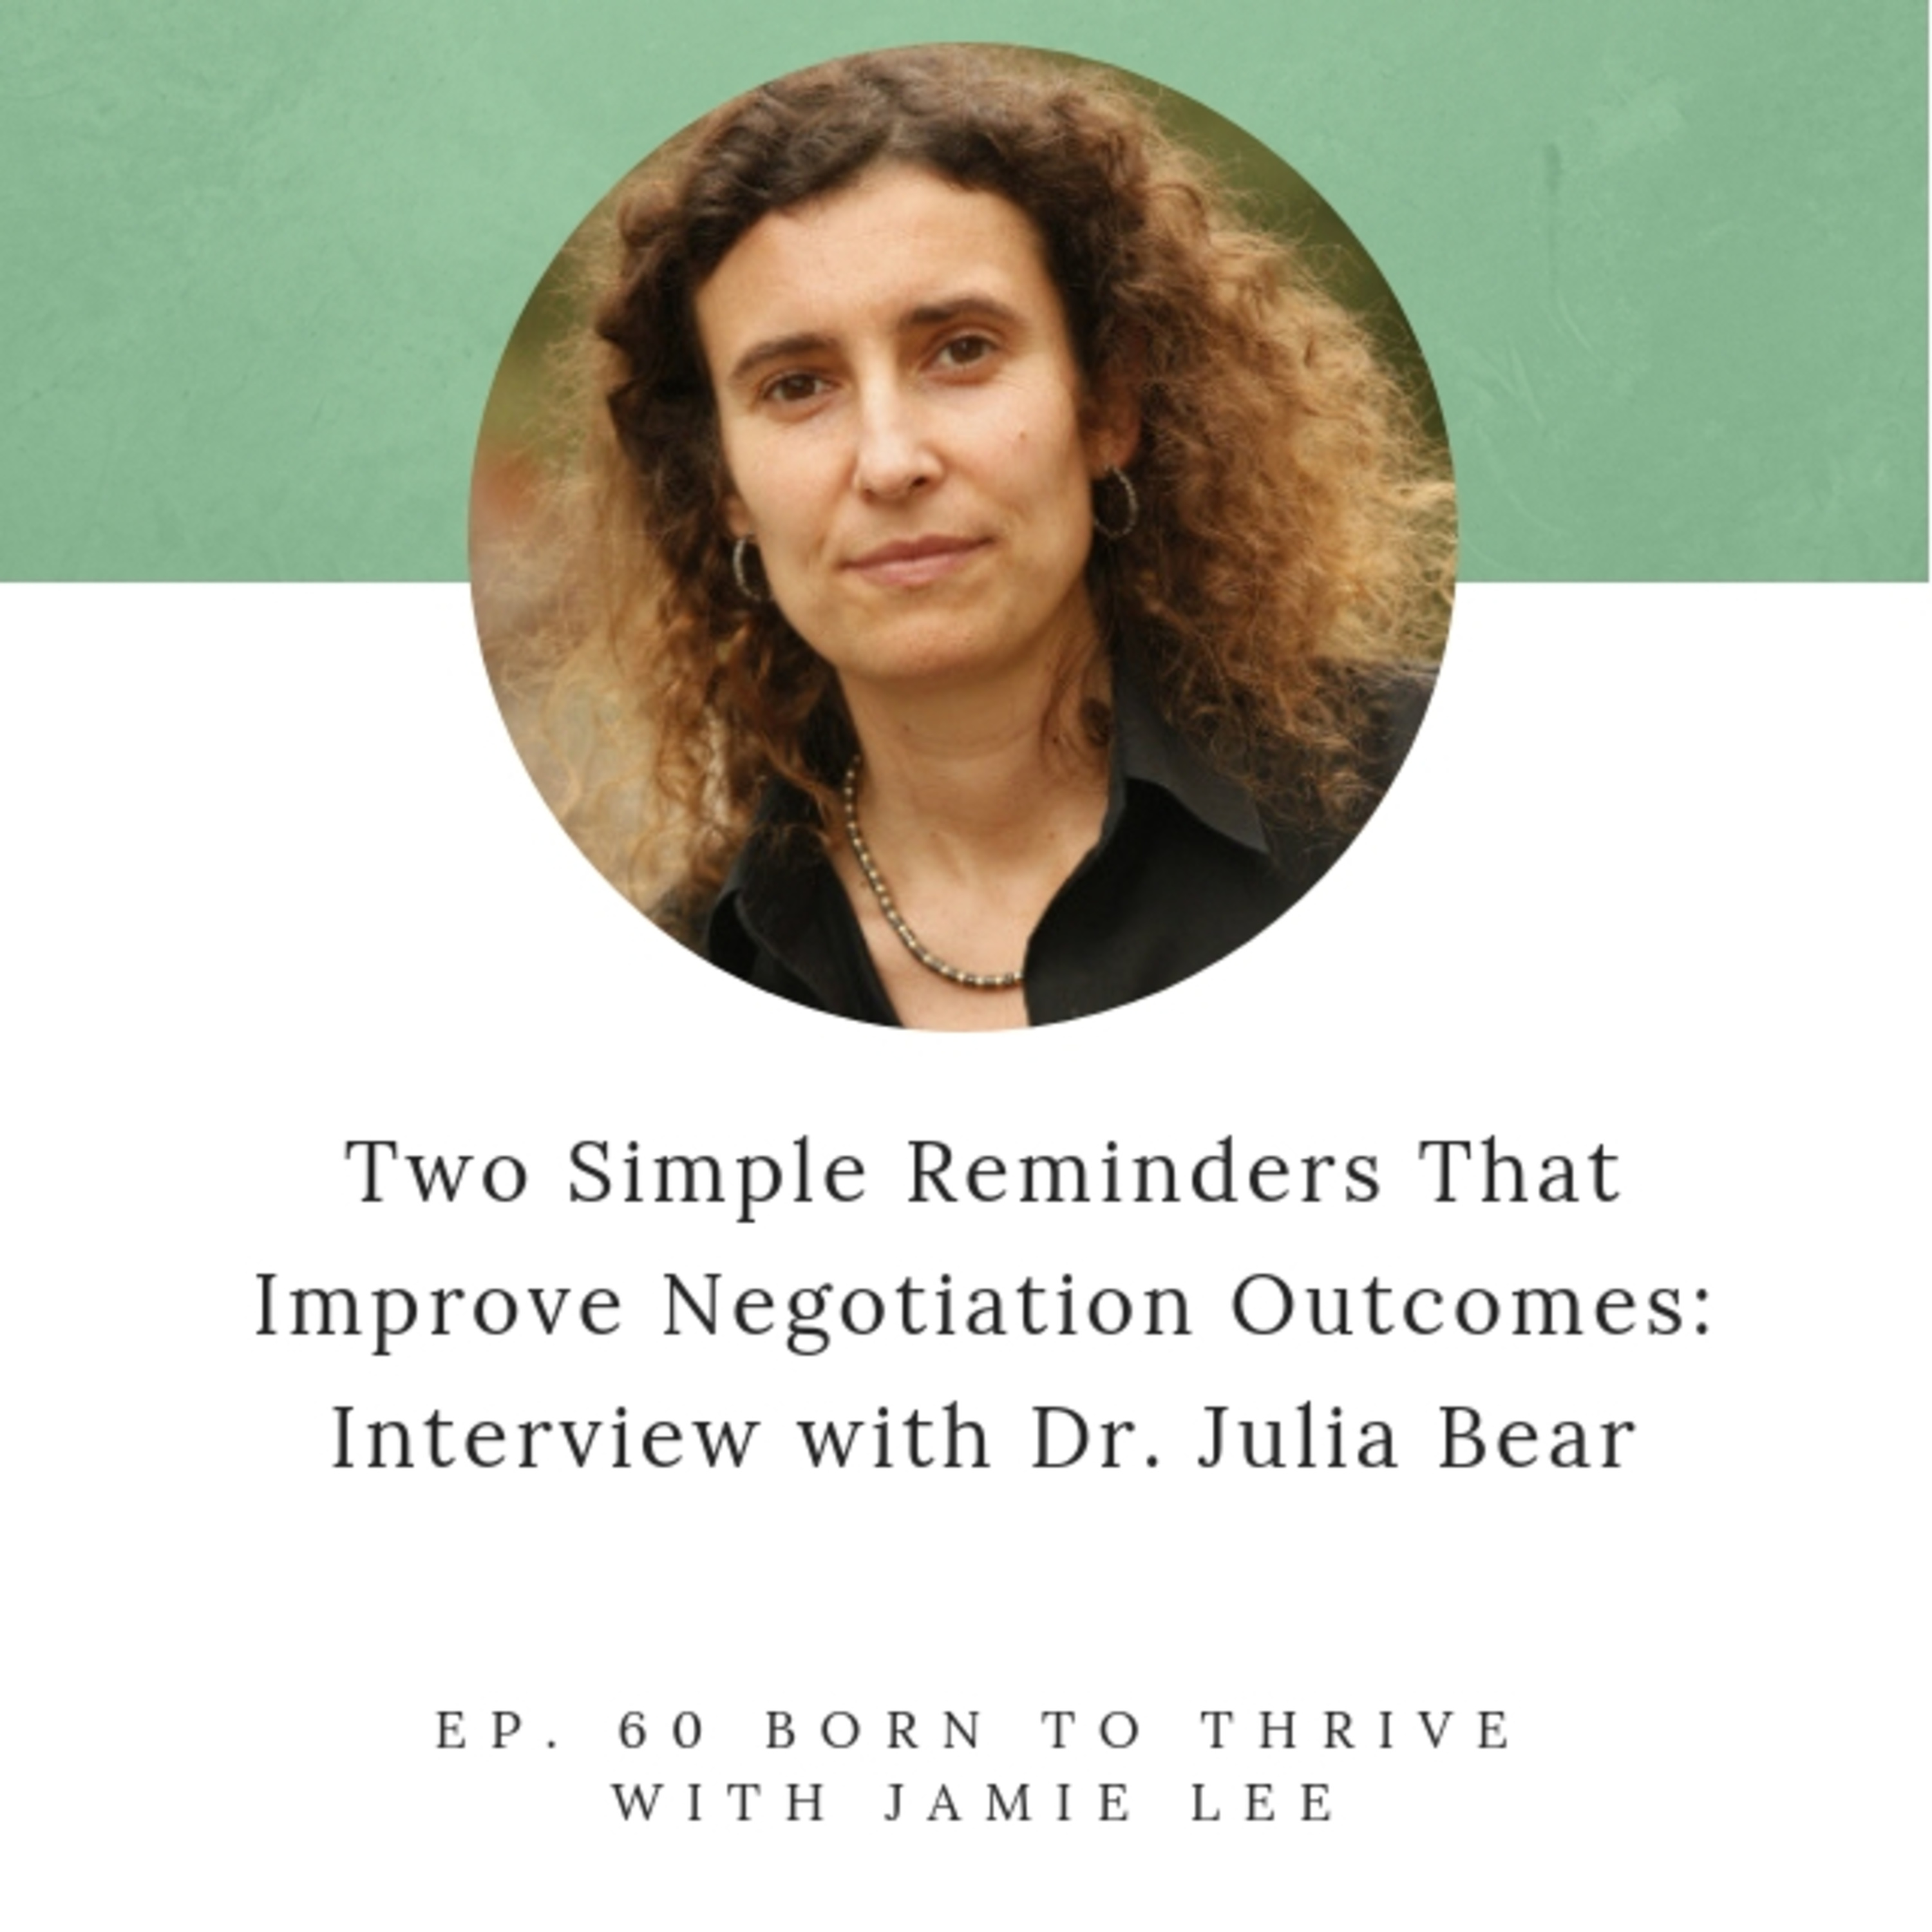 Ep. 60 Two Simple Reminders that Improve Negotiation Outcomes: Dr. Julia Bear